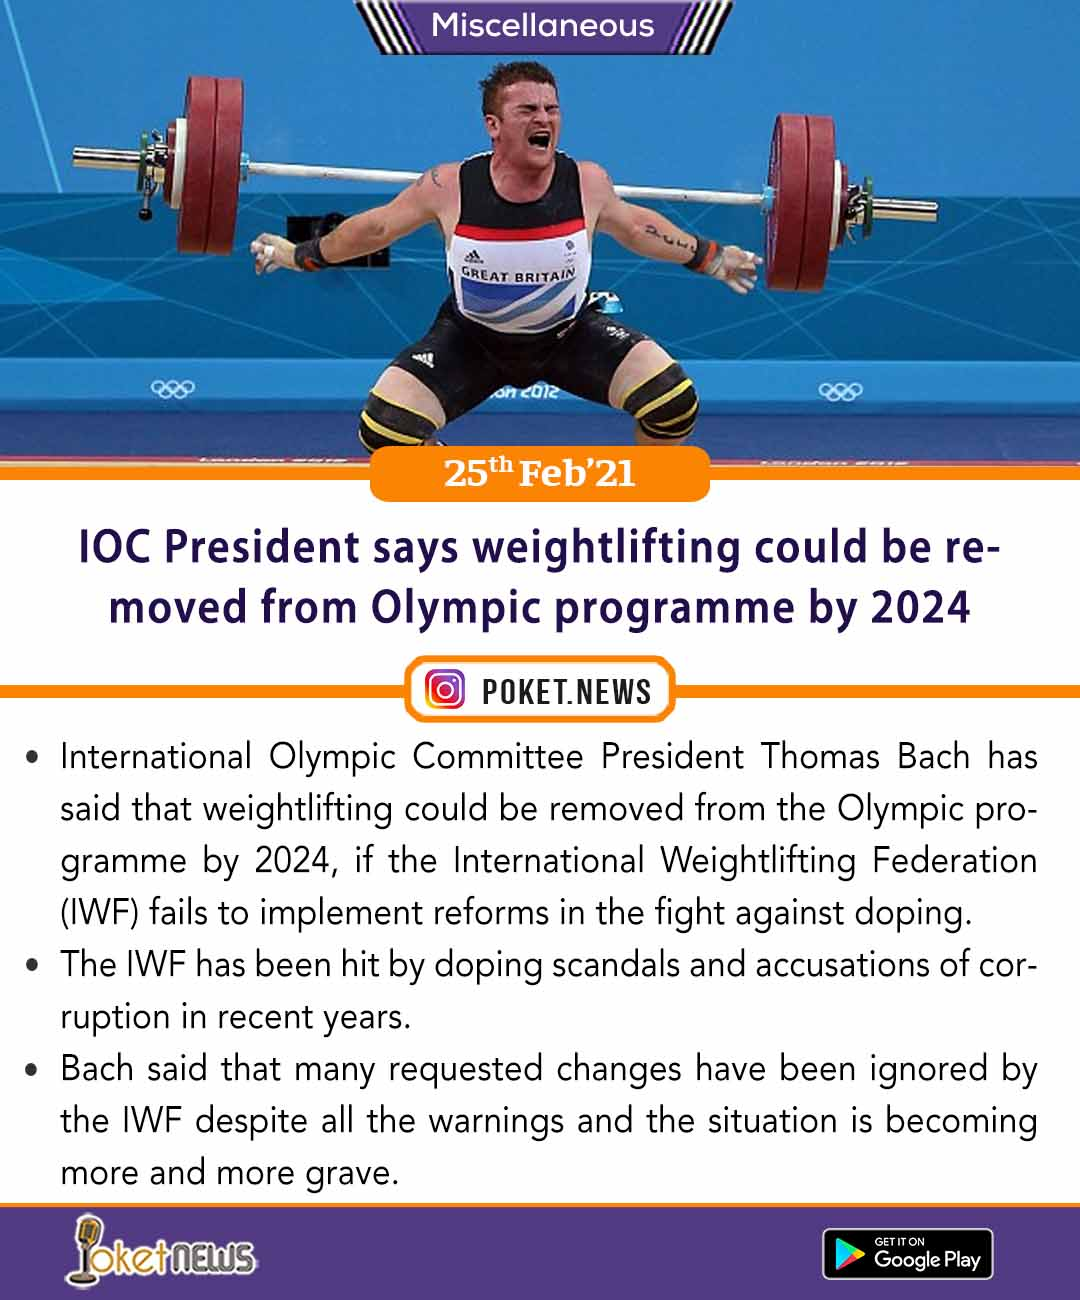 IOC President says weightlifting could be removed from Olympic programme by 2024